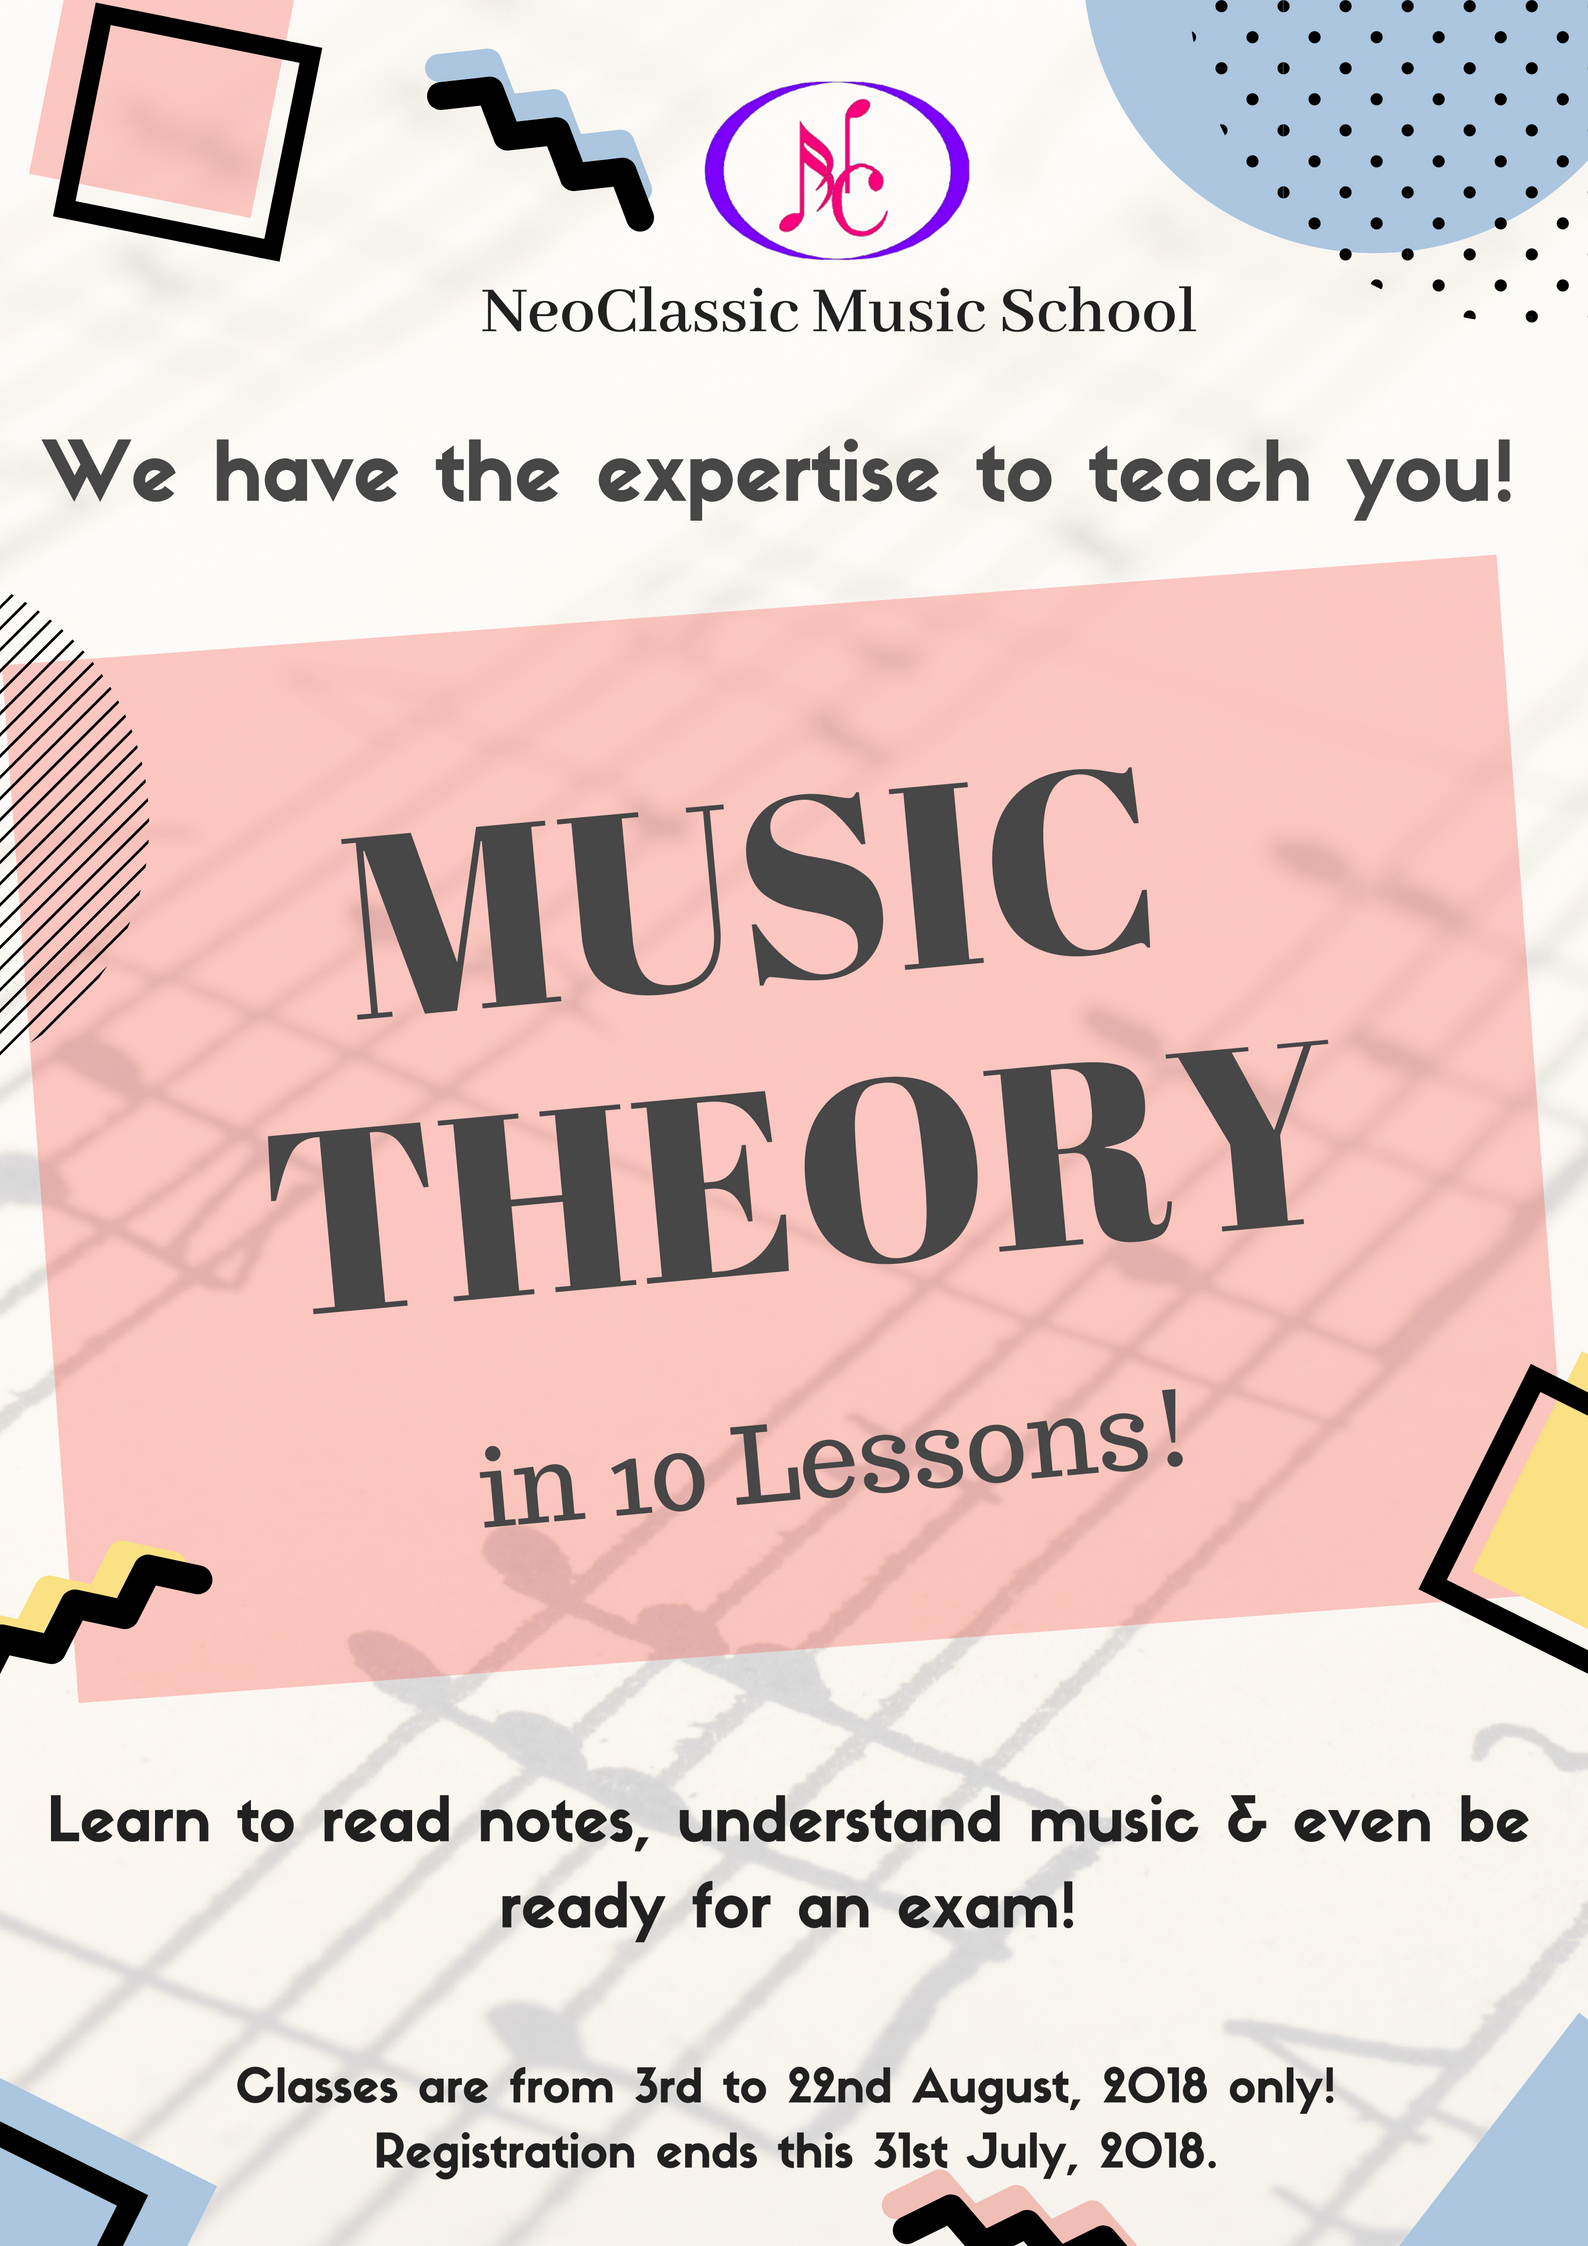 benefits of music theory classes